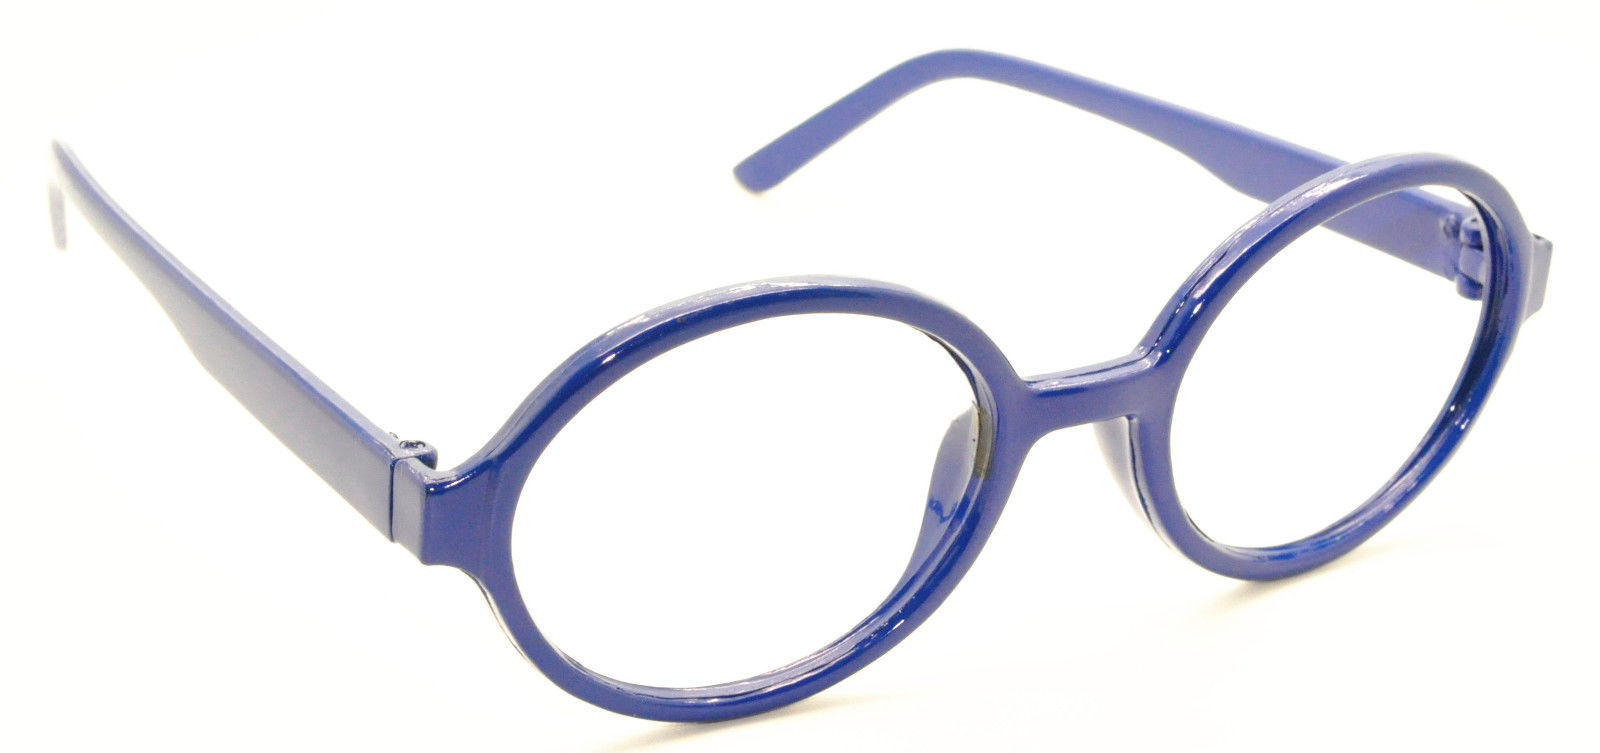 Geek Nerd Style Oval Round Shape Style Glasses Frames NO LENS Wizard Costume